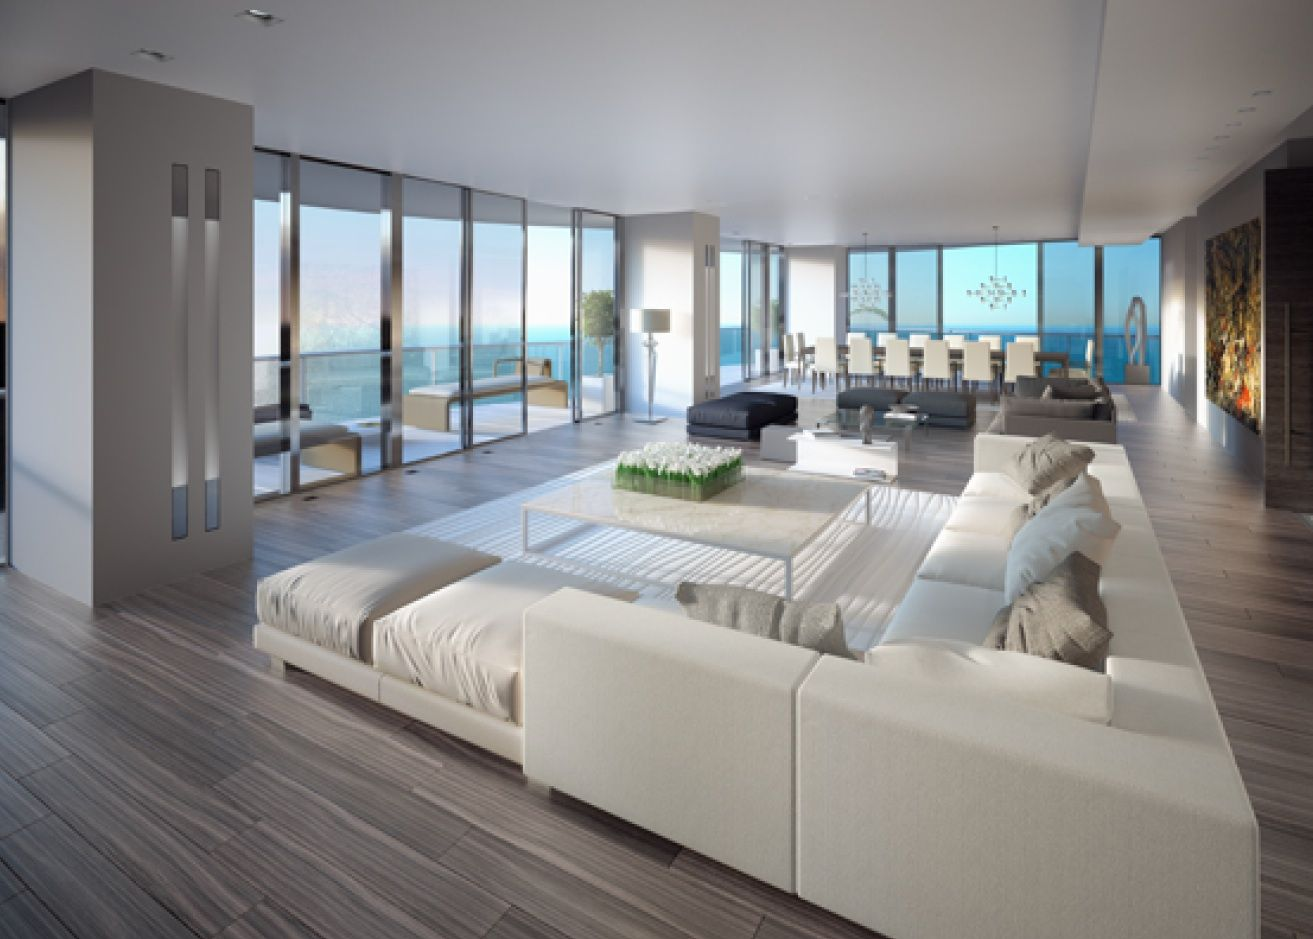 luxury condos  Ultra Luxury Oceanfront Condos-New Construction  Home Design ...